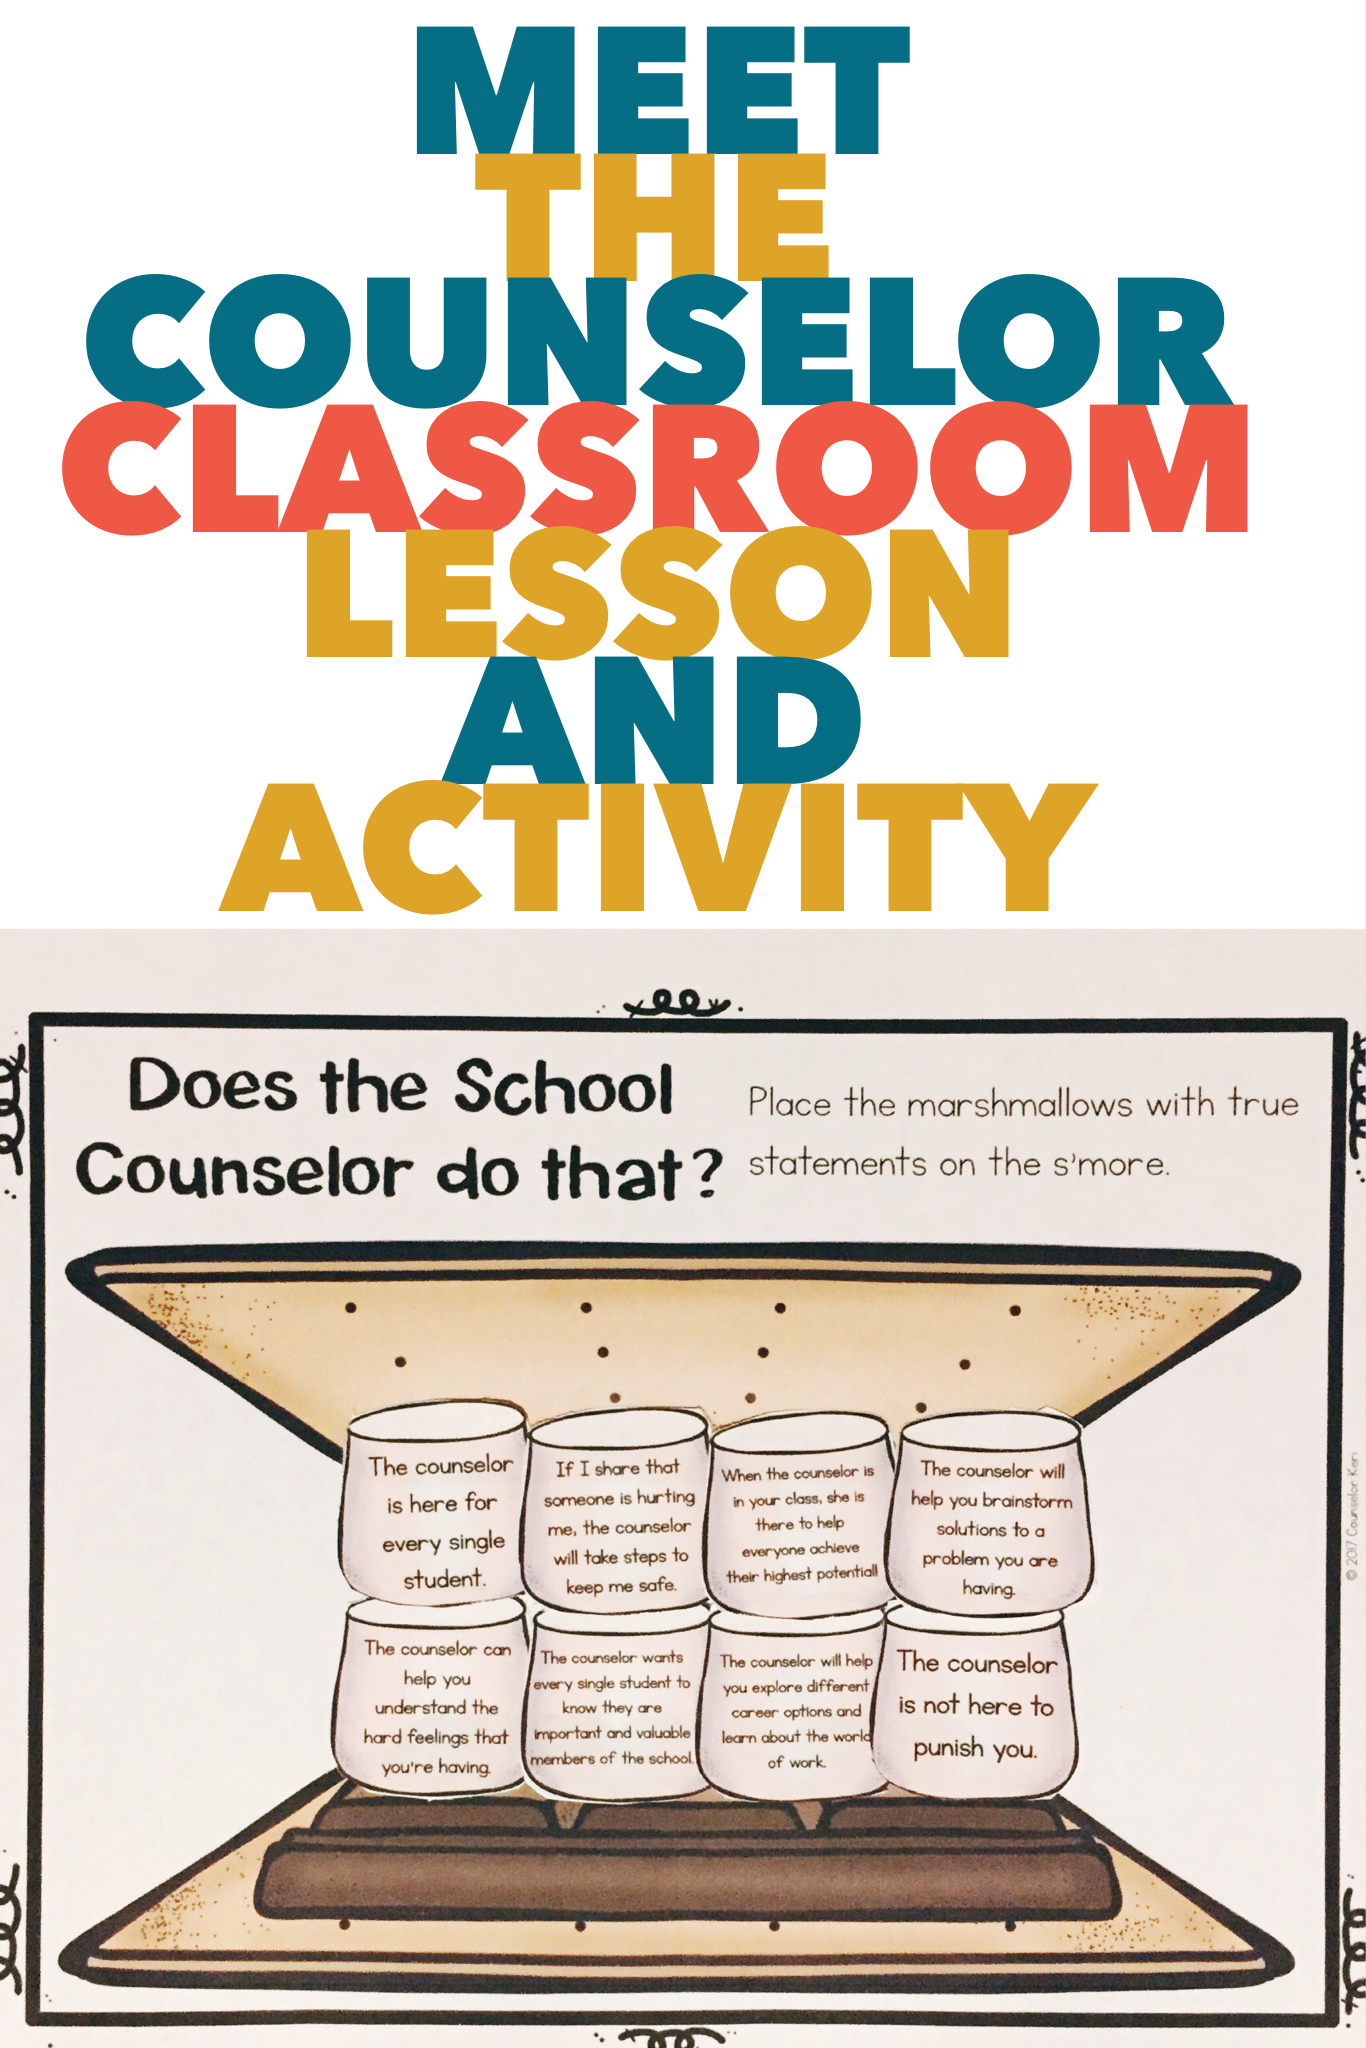 Meet The Counselor Activity Classroom Guidance Lesson For